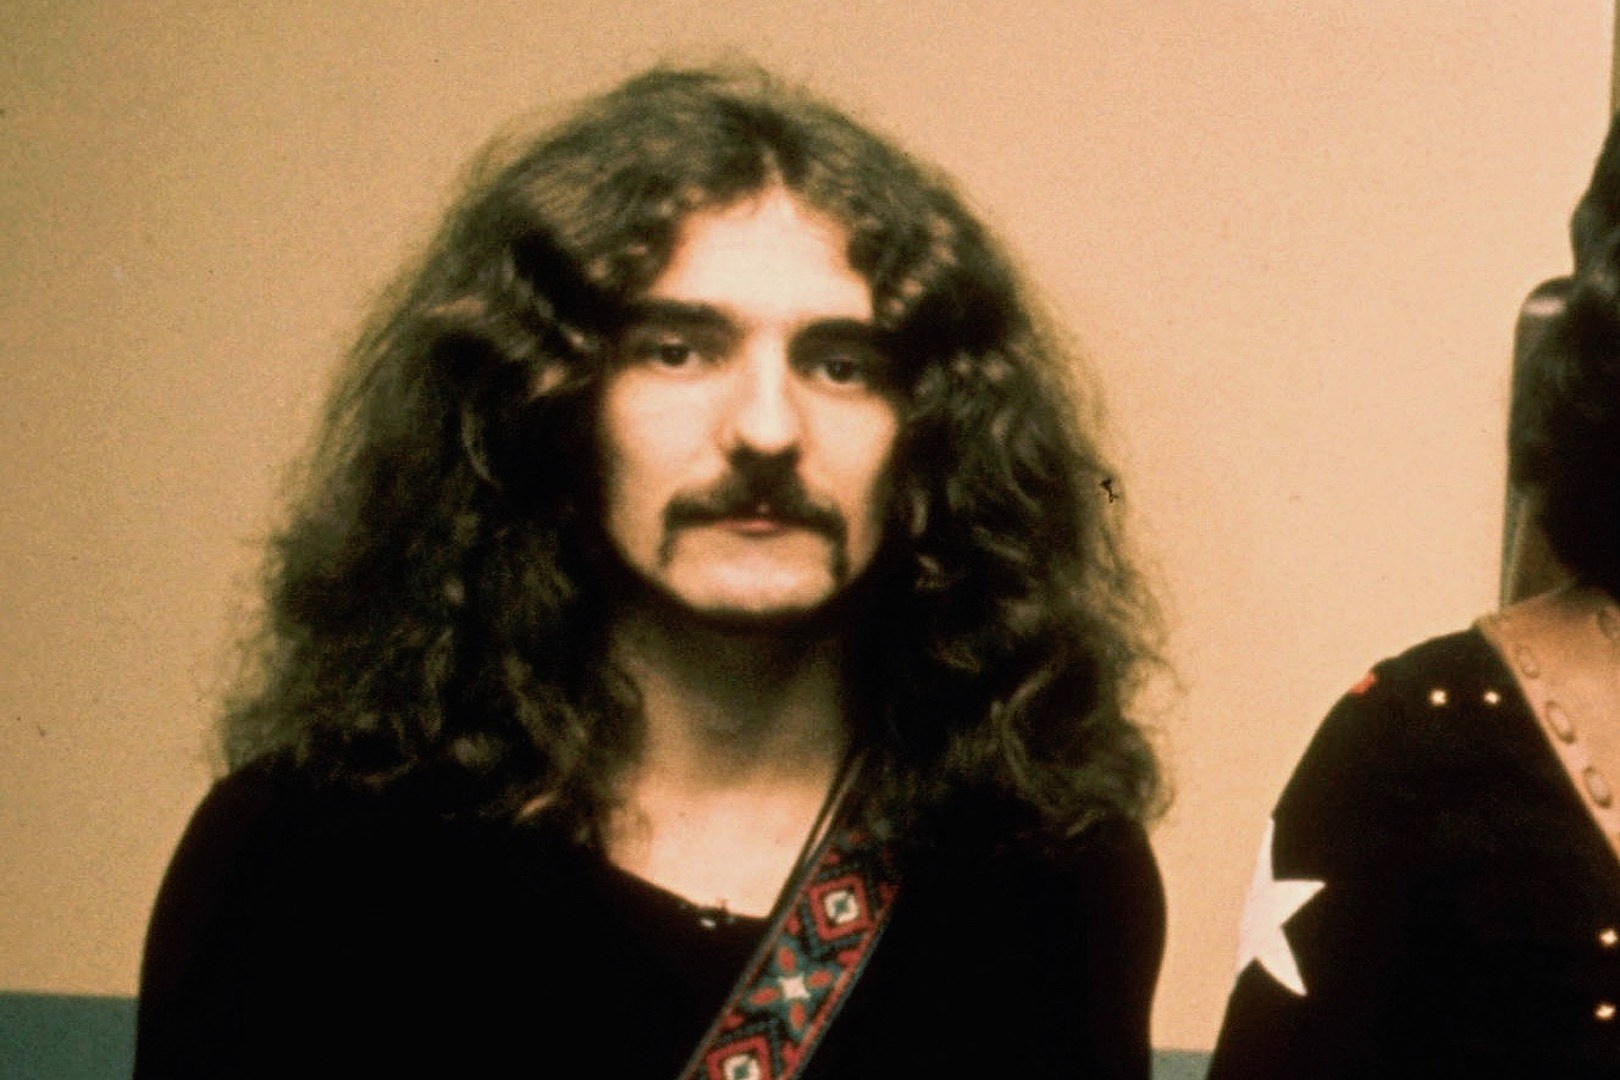 See Photos of Black Sabbath's Geezer Butler Through the Years